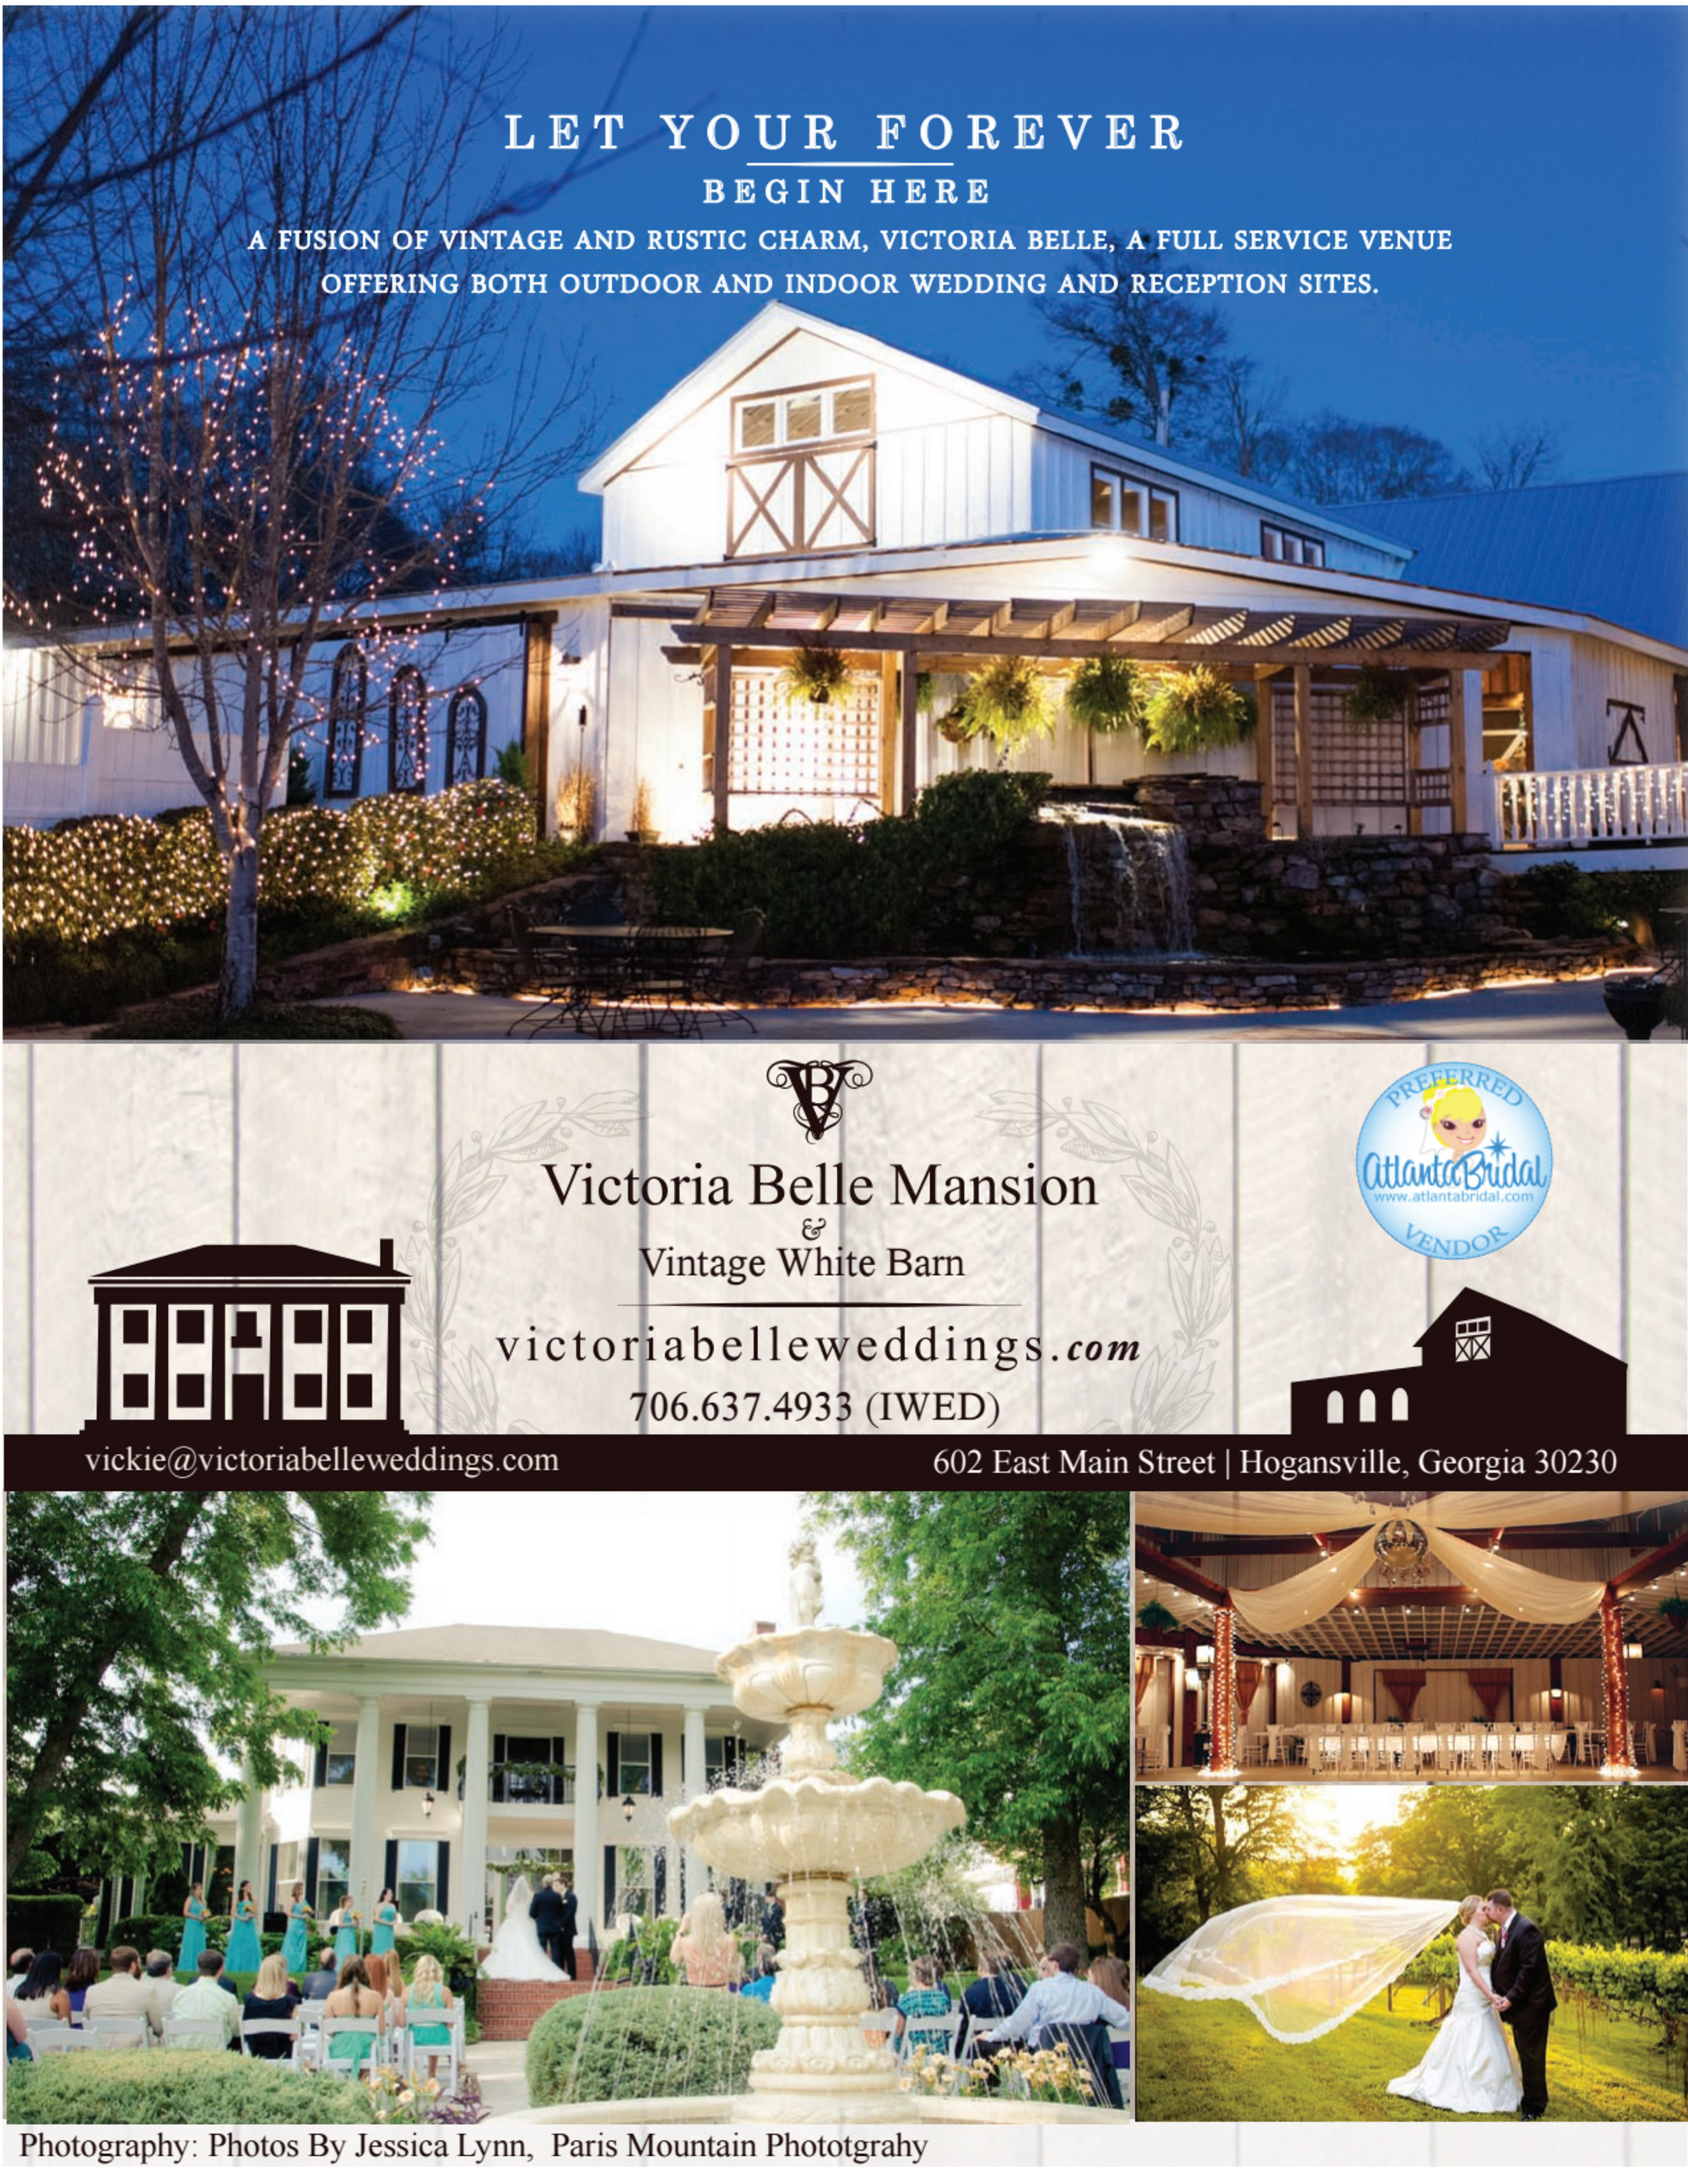 Victoria Belle Mansion and Vintage White Barn Info Pack